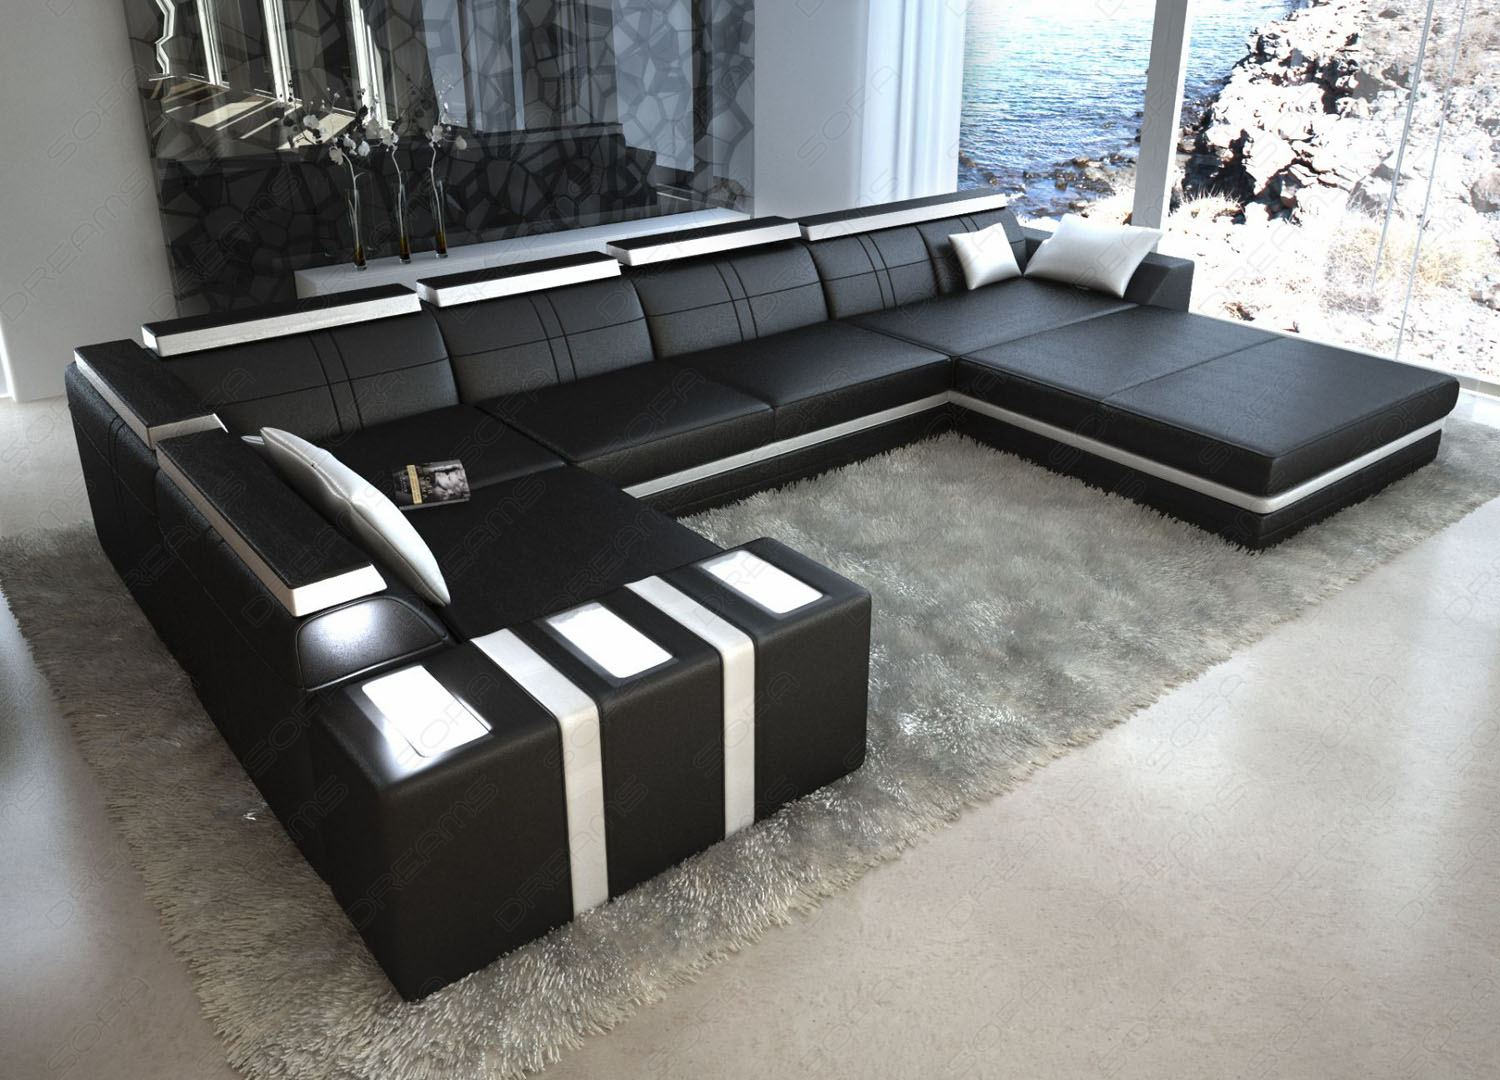 ledersofa asti u form schwarz weiss wohnlandschaft mit licht ebay. Black Bedroom Furniture Sets. Home Design Ideas